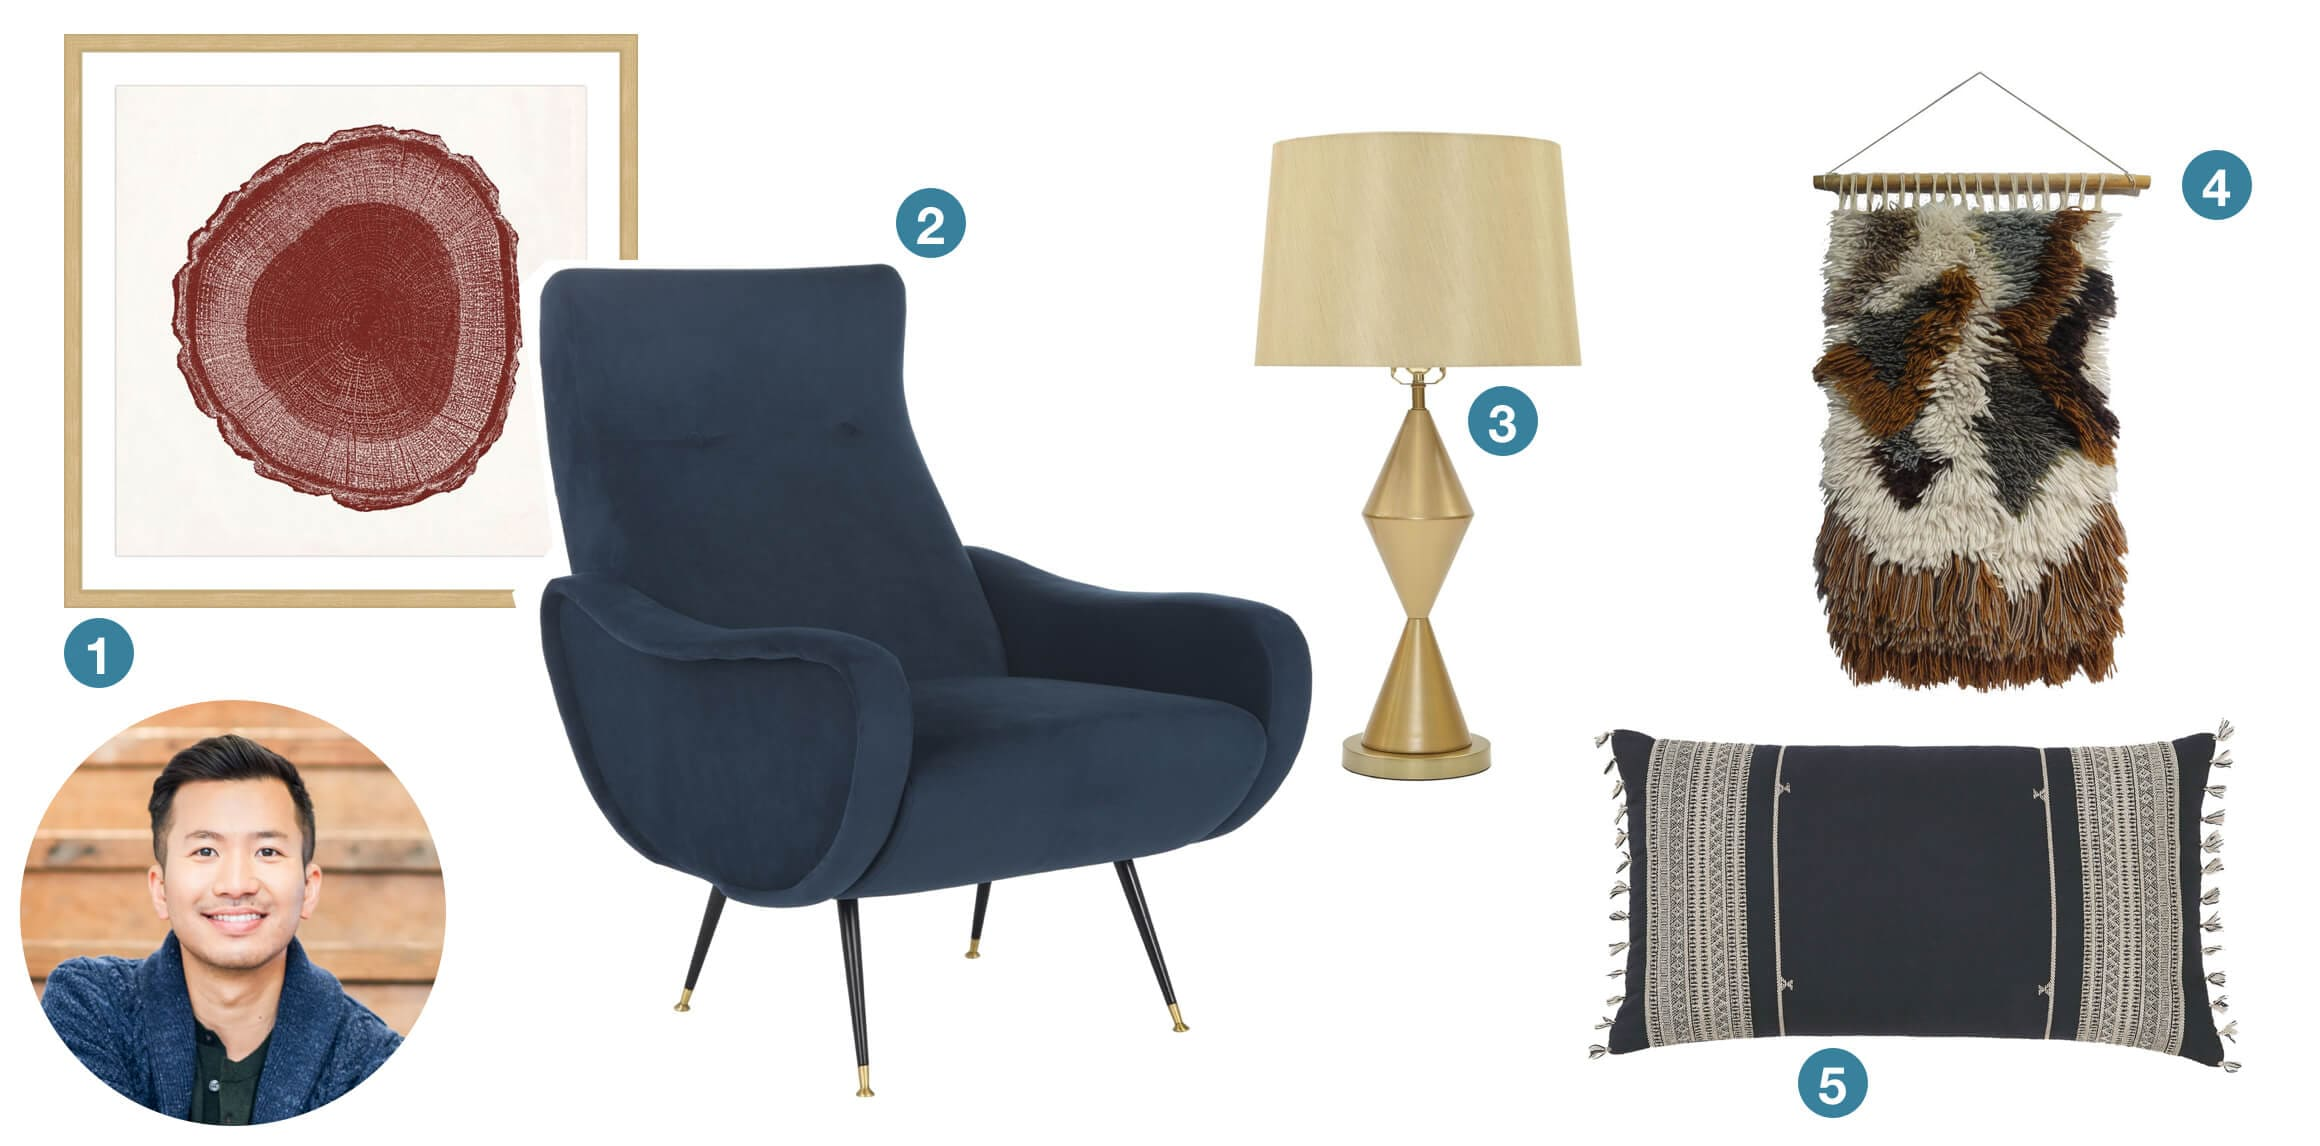 A wood stump art piece, blue velvet modern chair, gold diamond table lamp, moroccan wall hanging, and blue lumbar throw pillow. These are great gift ideas submitted from design blogger Old Brand New.